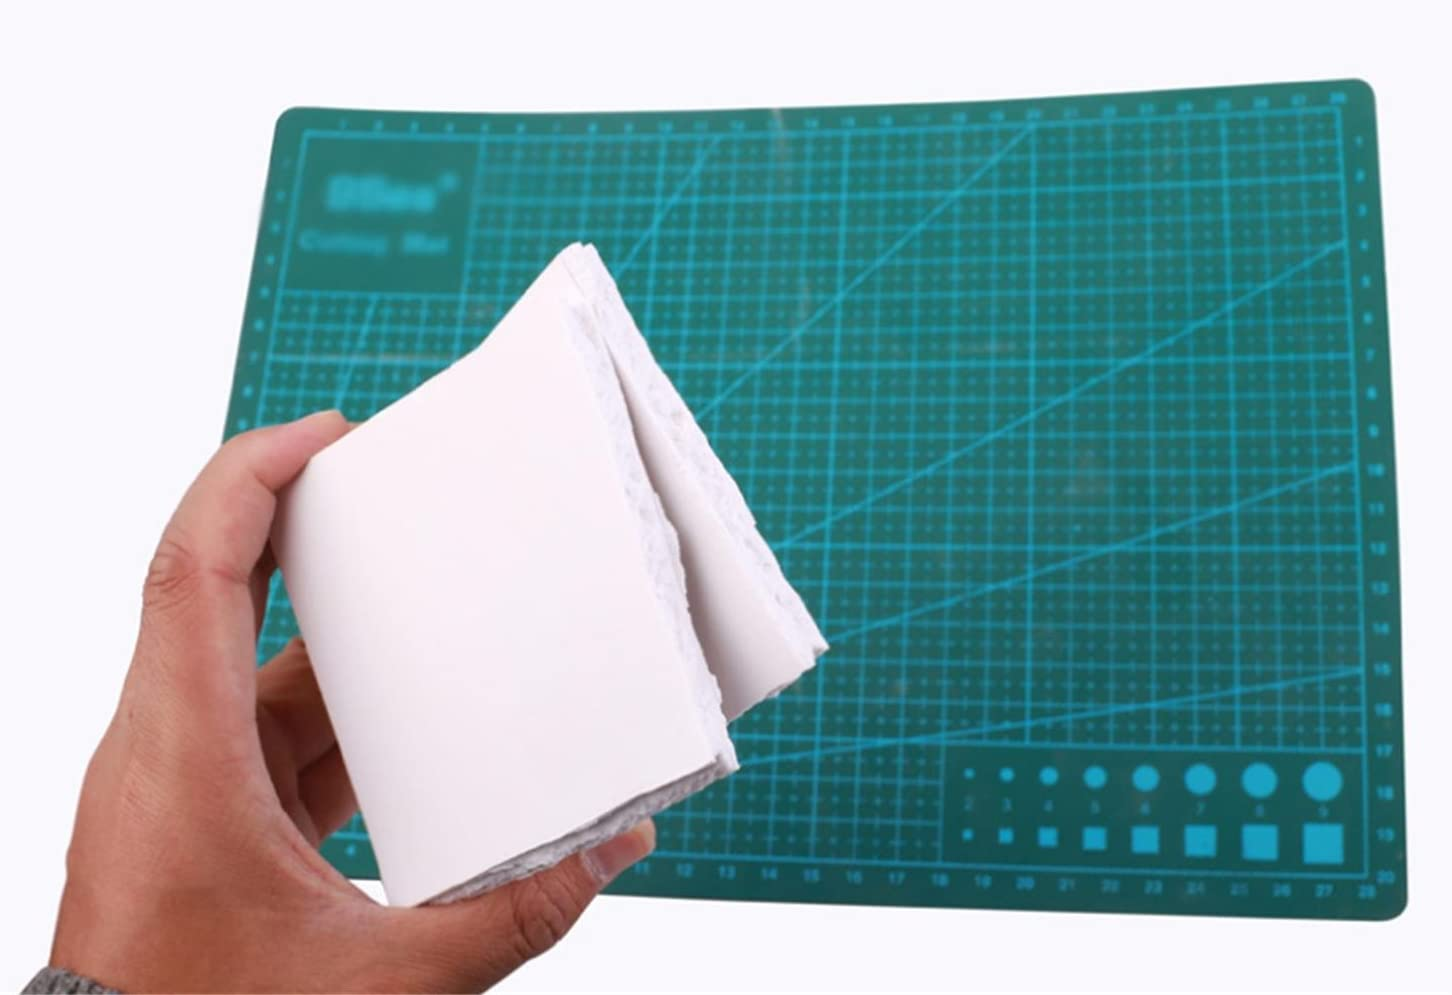 20cm/×30cm 30cm/×40cm Thickness 2-18mm Smooth Finish White For Craft Model Displays Signage Screen Printing Cosplay Expanded PVC Foam Board Sheet 5 Pieces